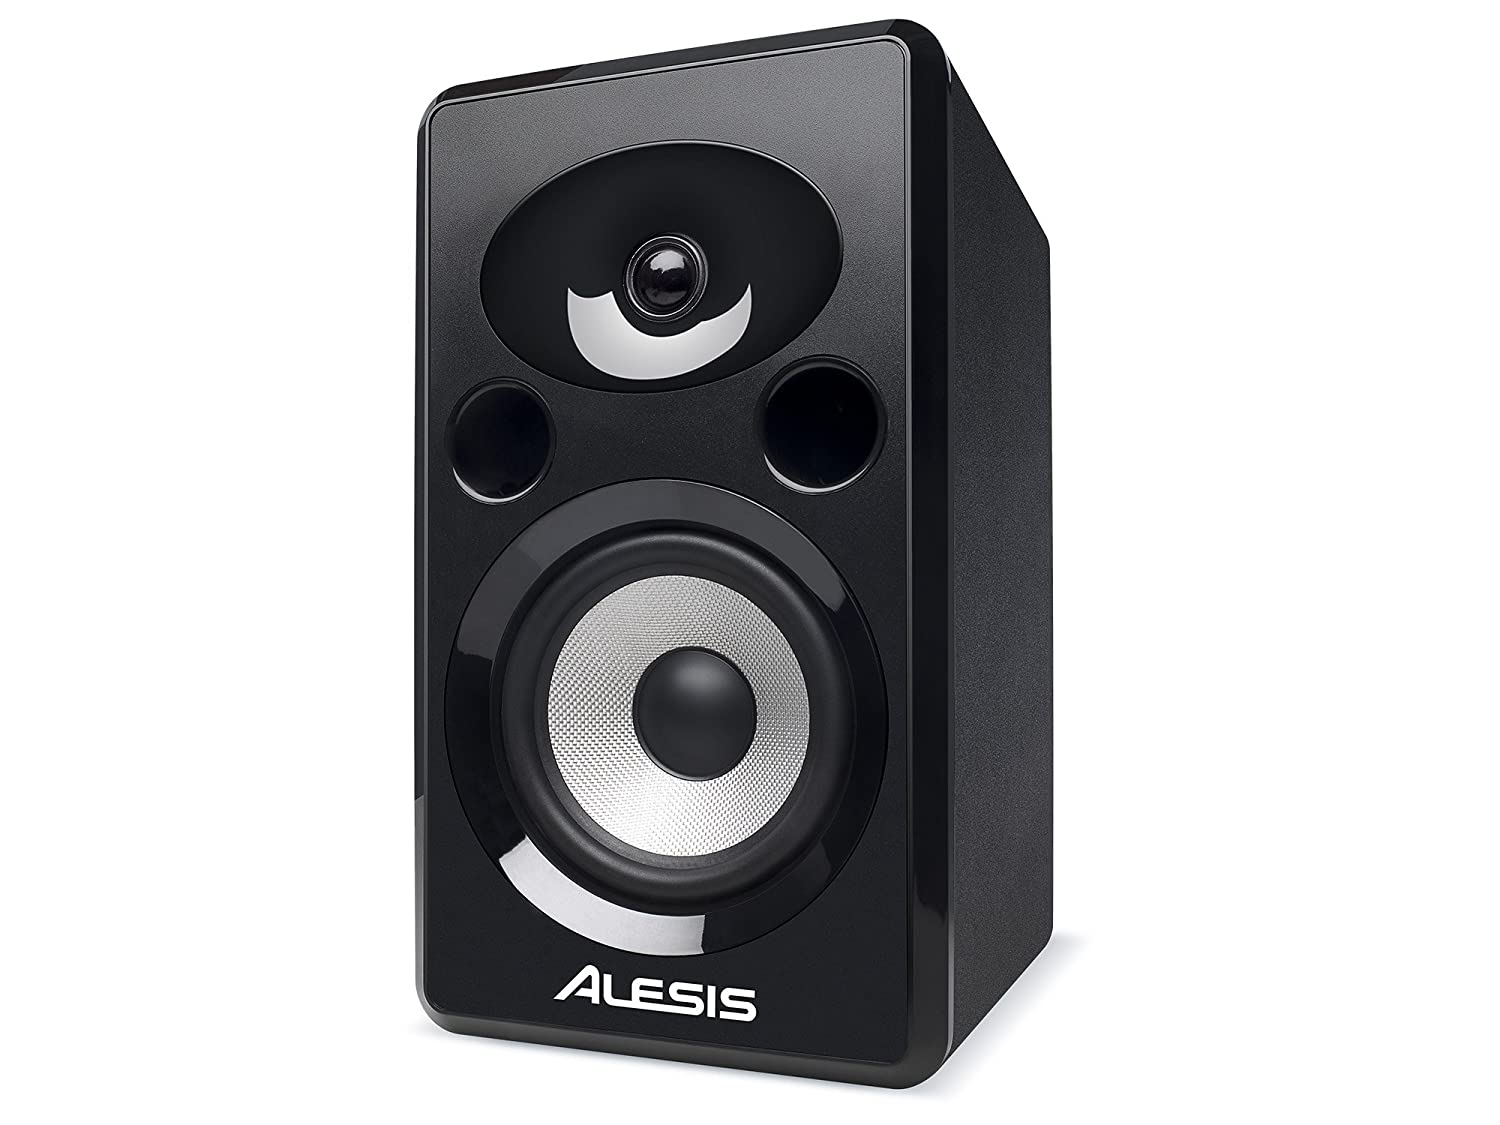 Alesis Elevate 6 Passive | 100-watt 6.5 Premium Passive Studio Monitor with HF Trim Switch & Binding Posts (Single Speaker) ELEVATE6PASSIVE Accessory Electronics Home Audio & Theater